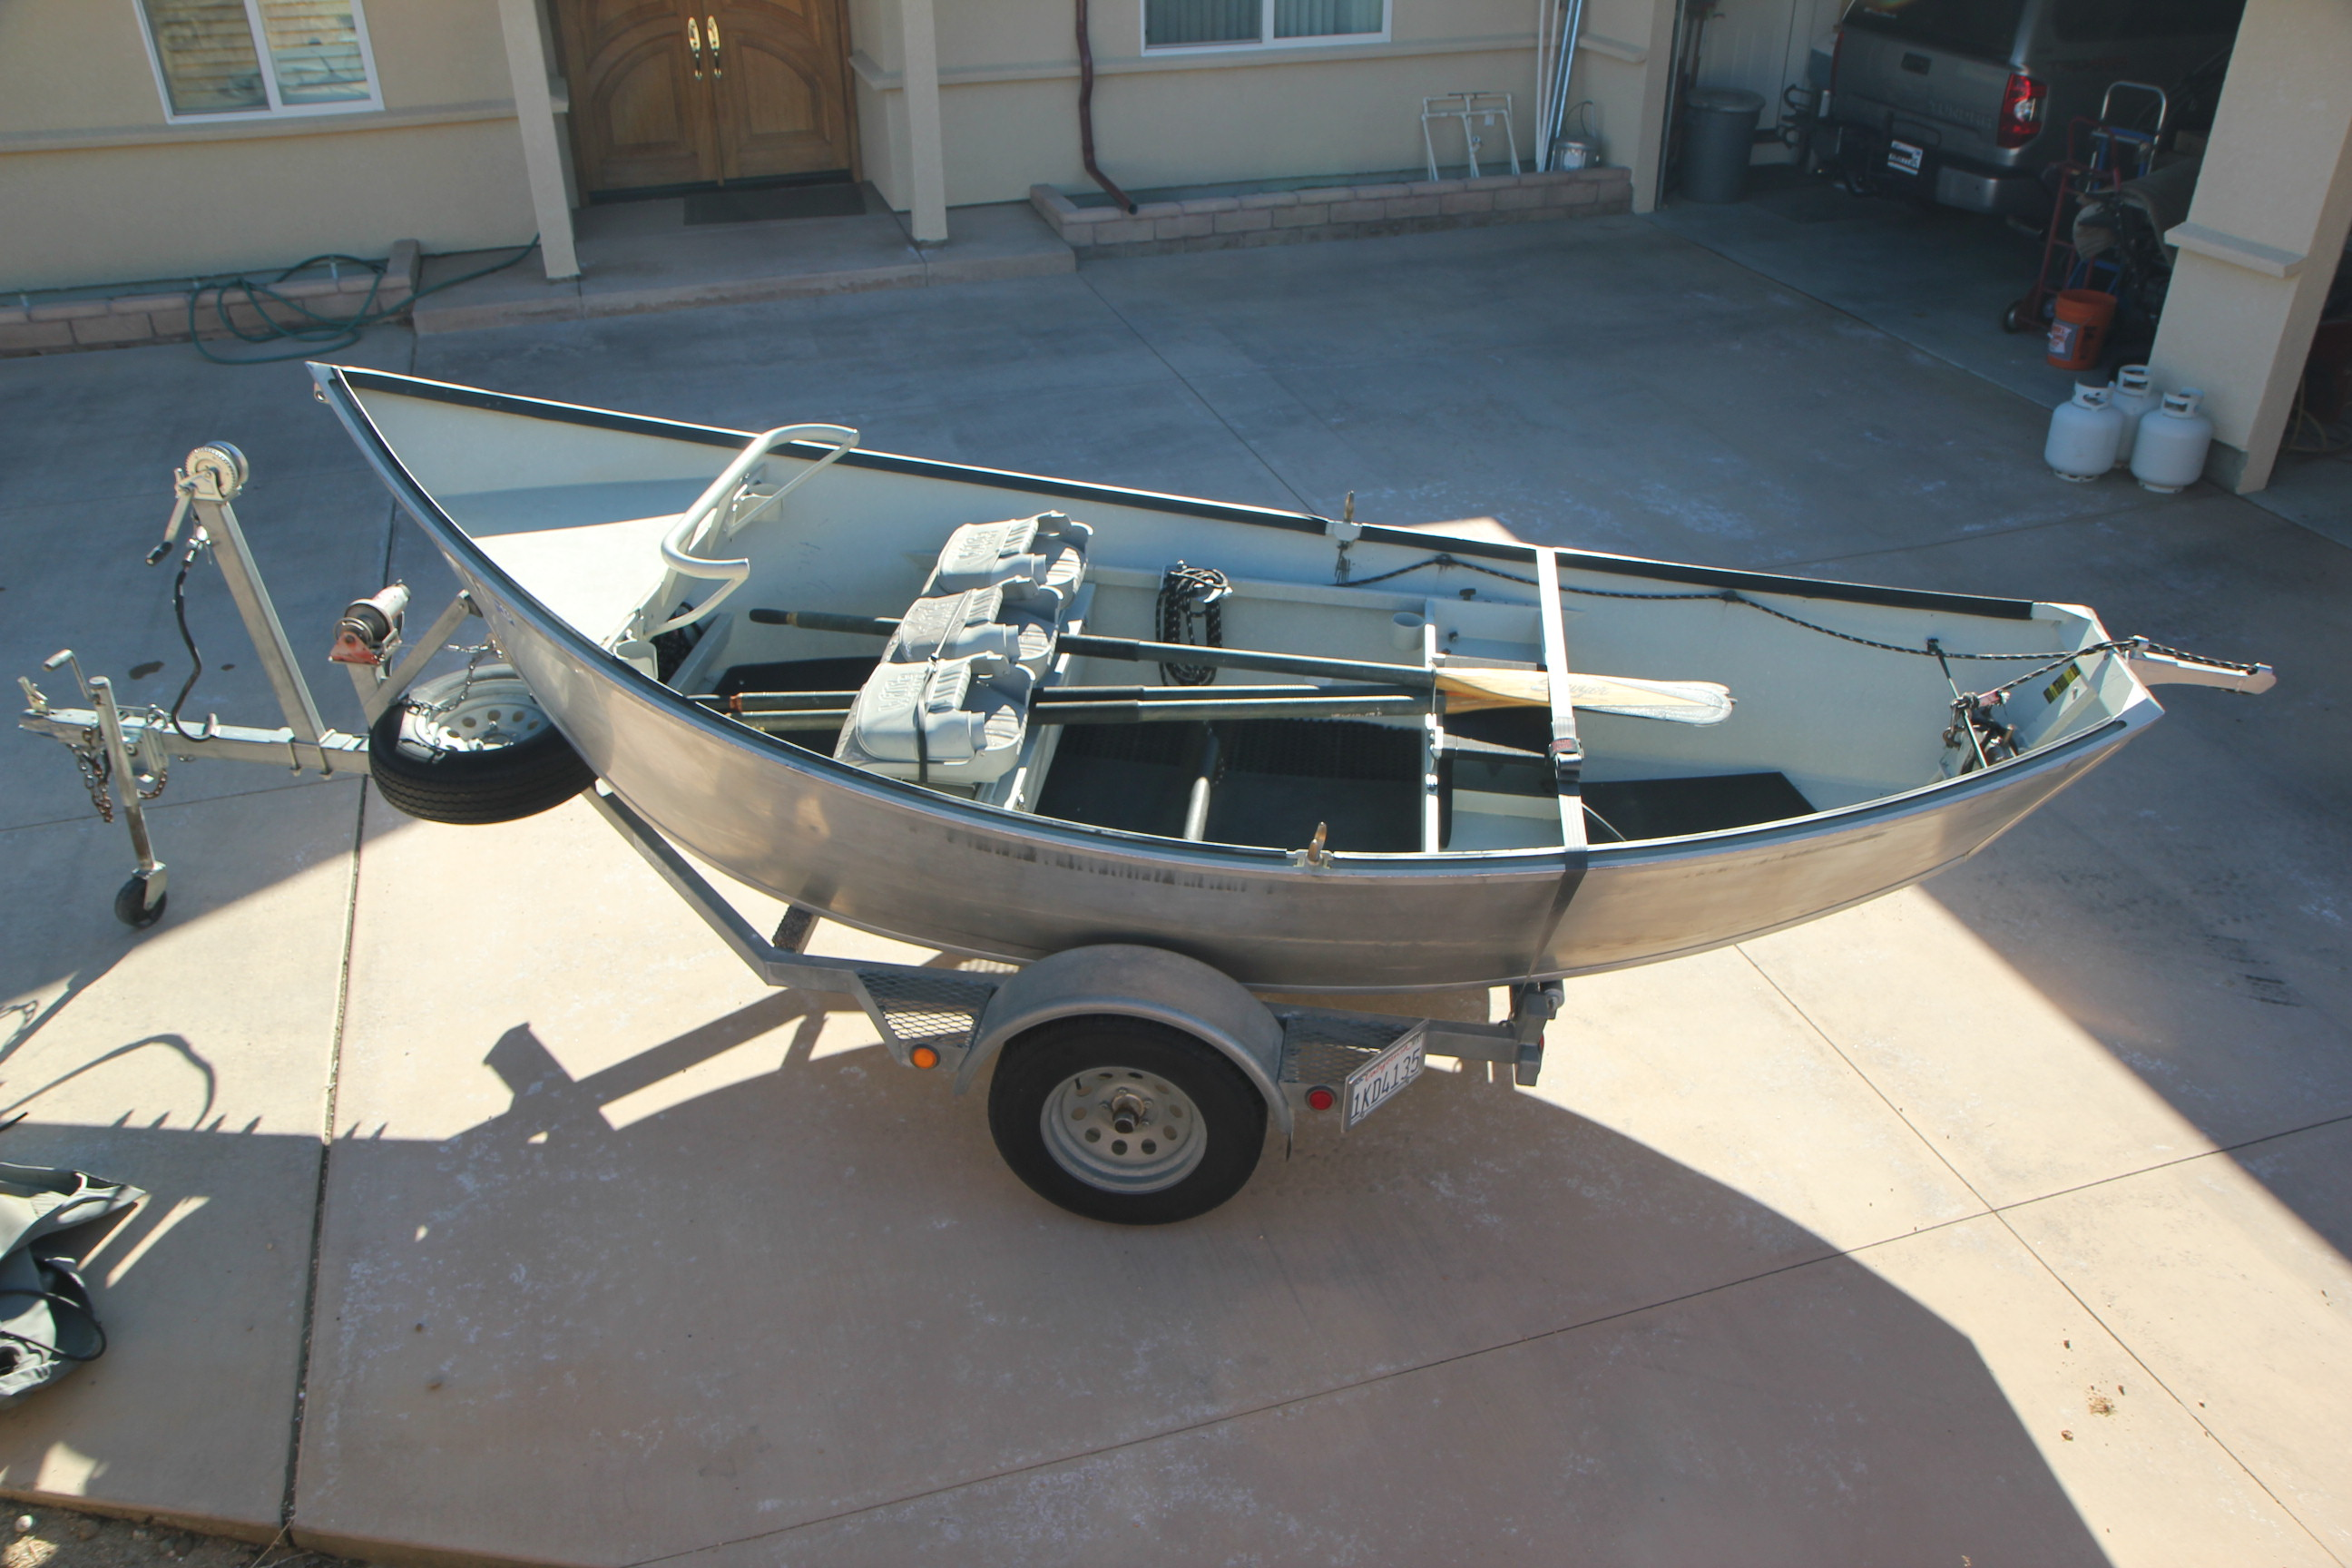 2001 16X54 Willie Drift Boat $5,500 - Willie Boats